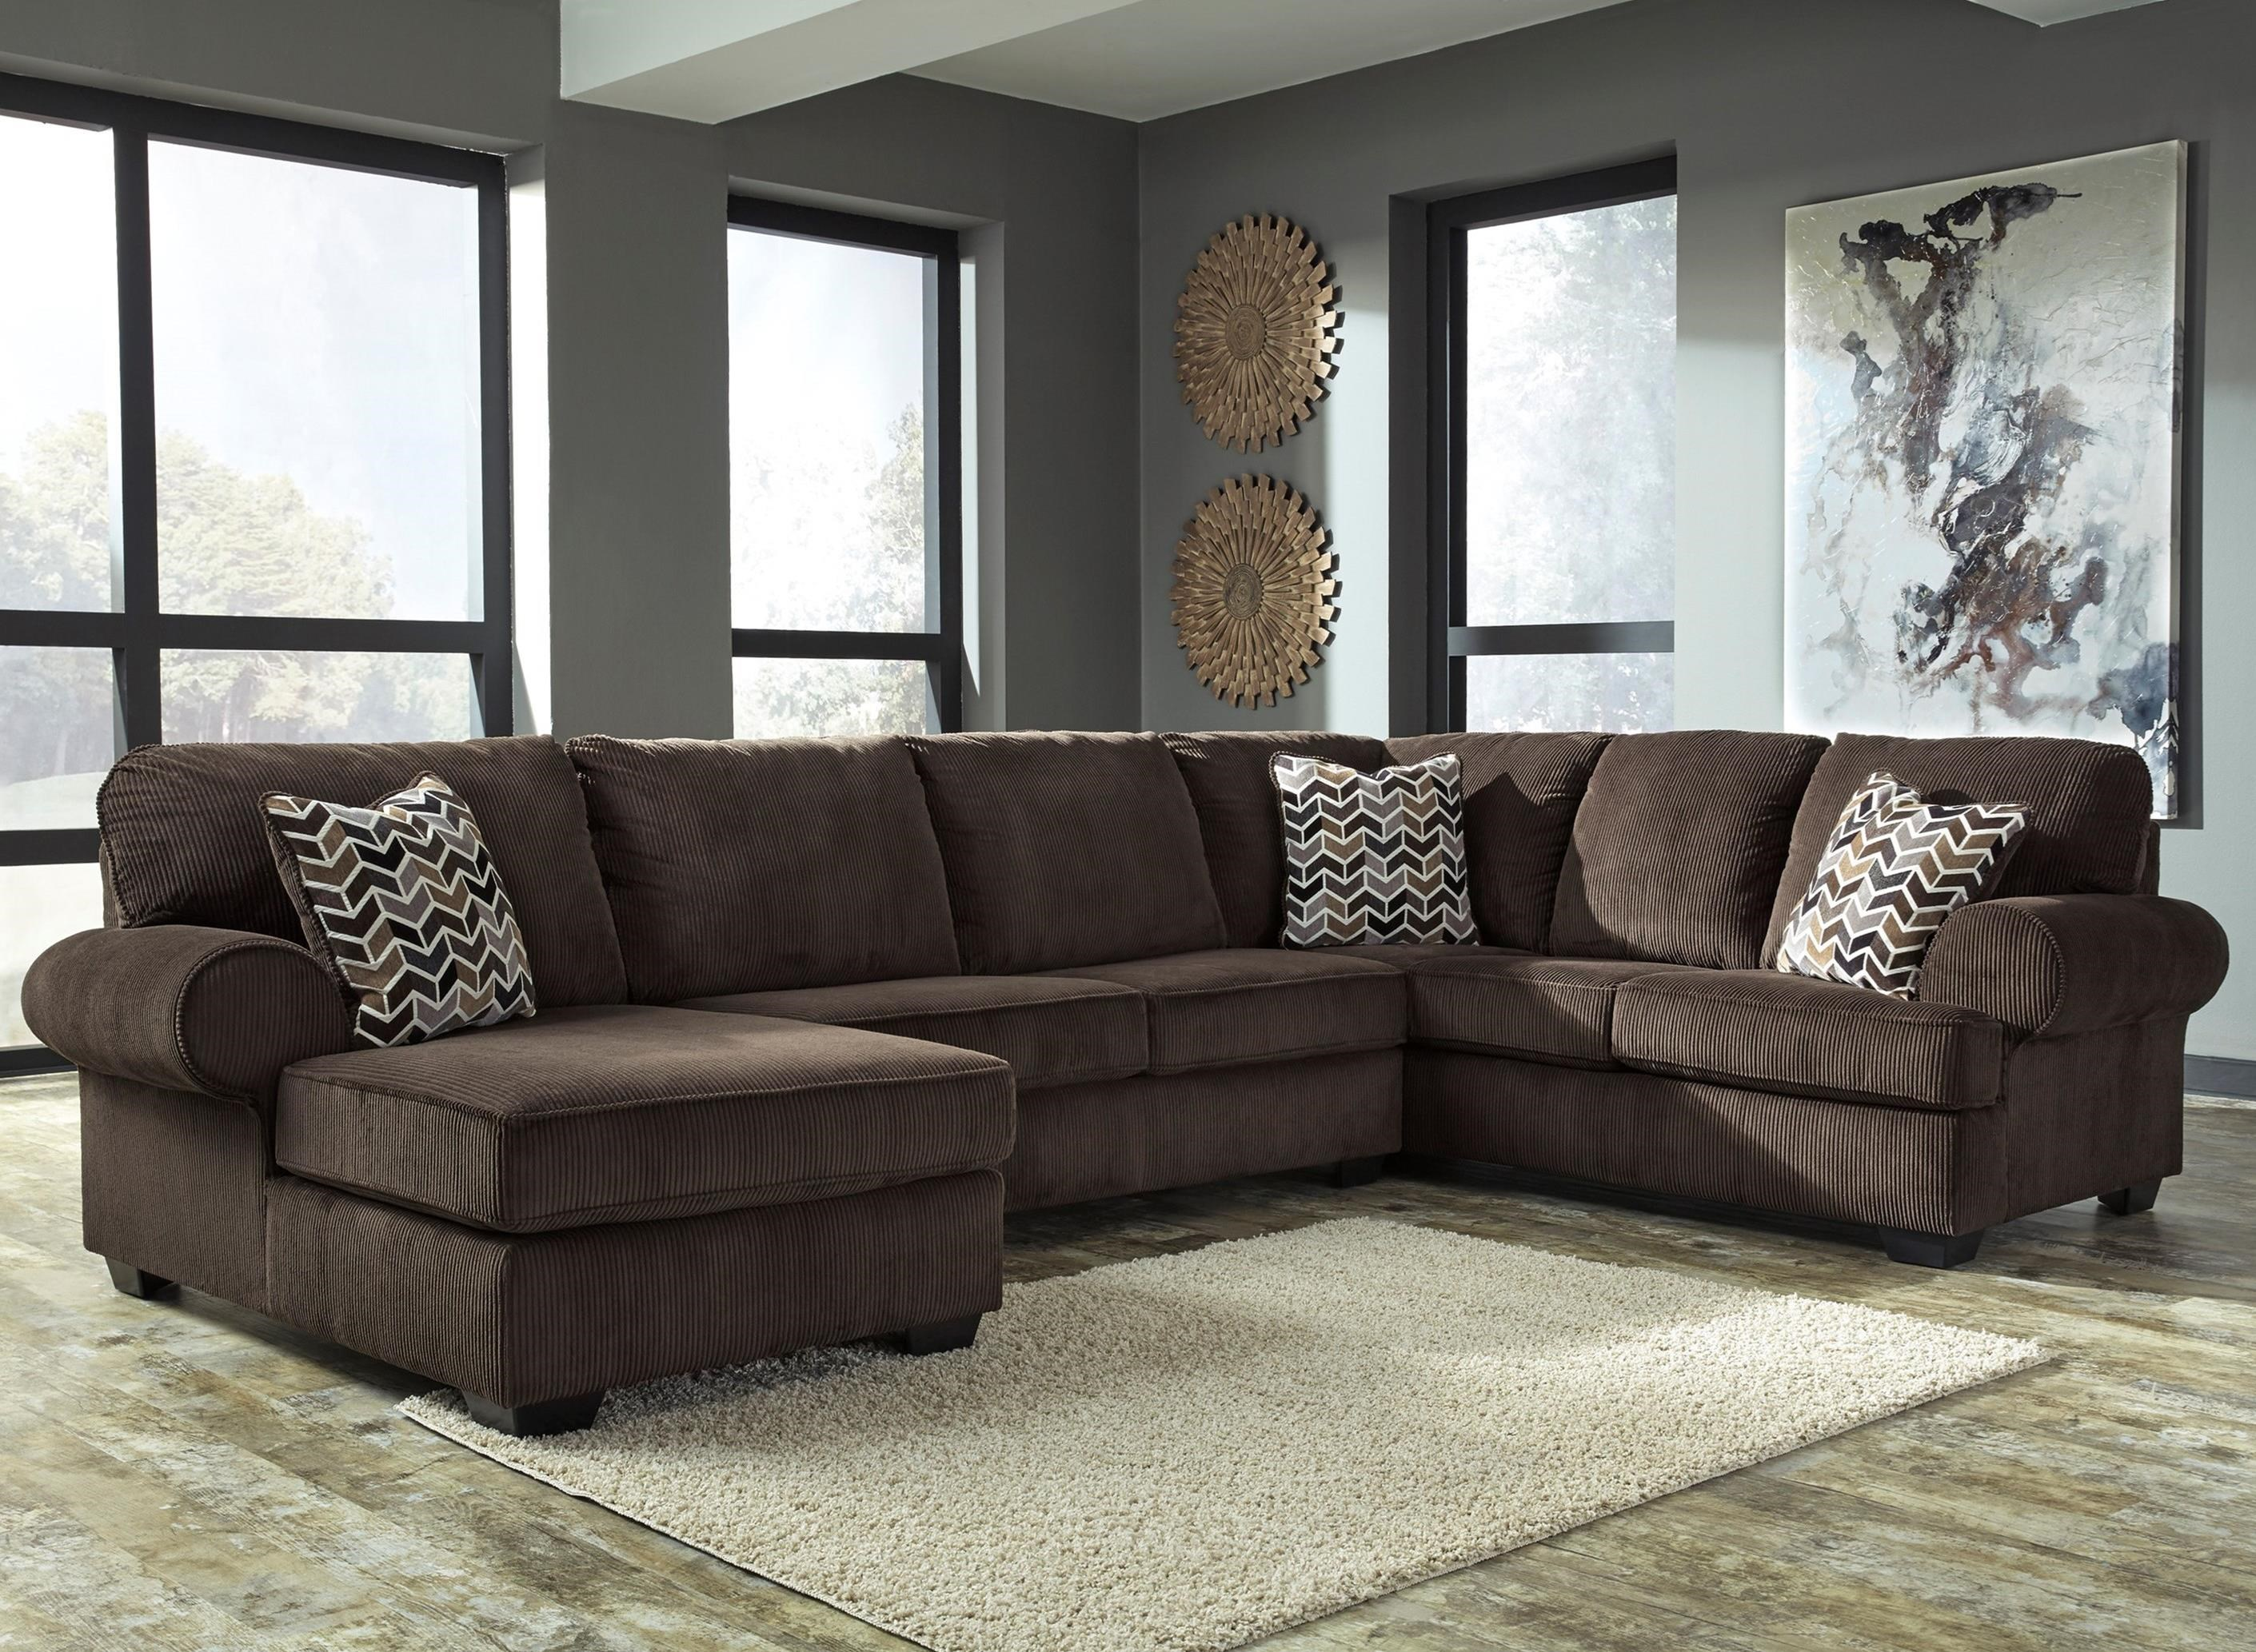 Signature design by ashley jinllingsly 3 piece sectional - Apartment sofa with chaise ...